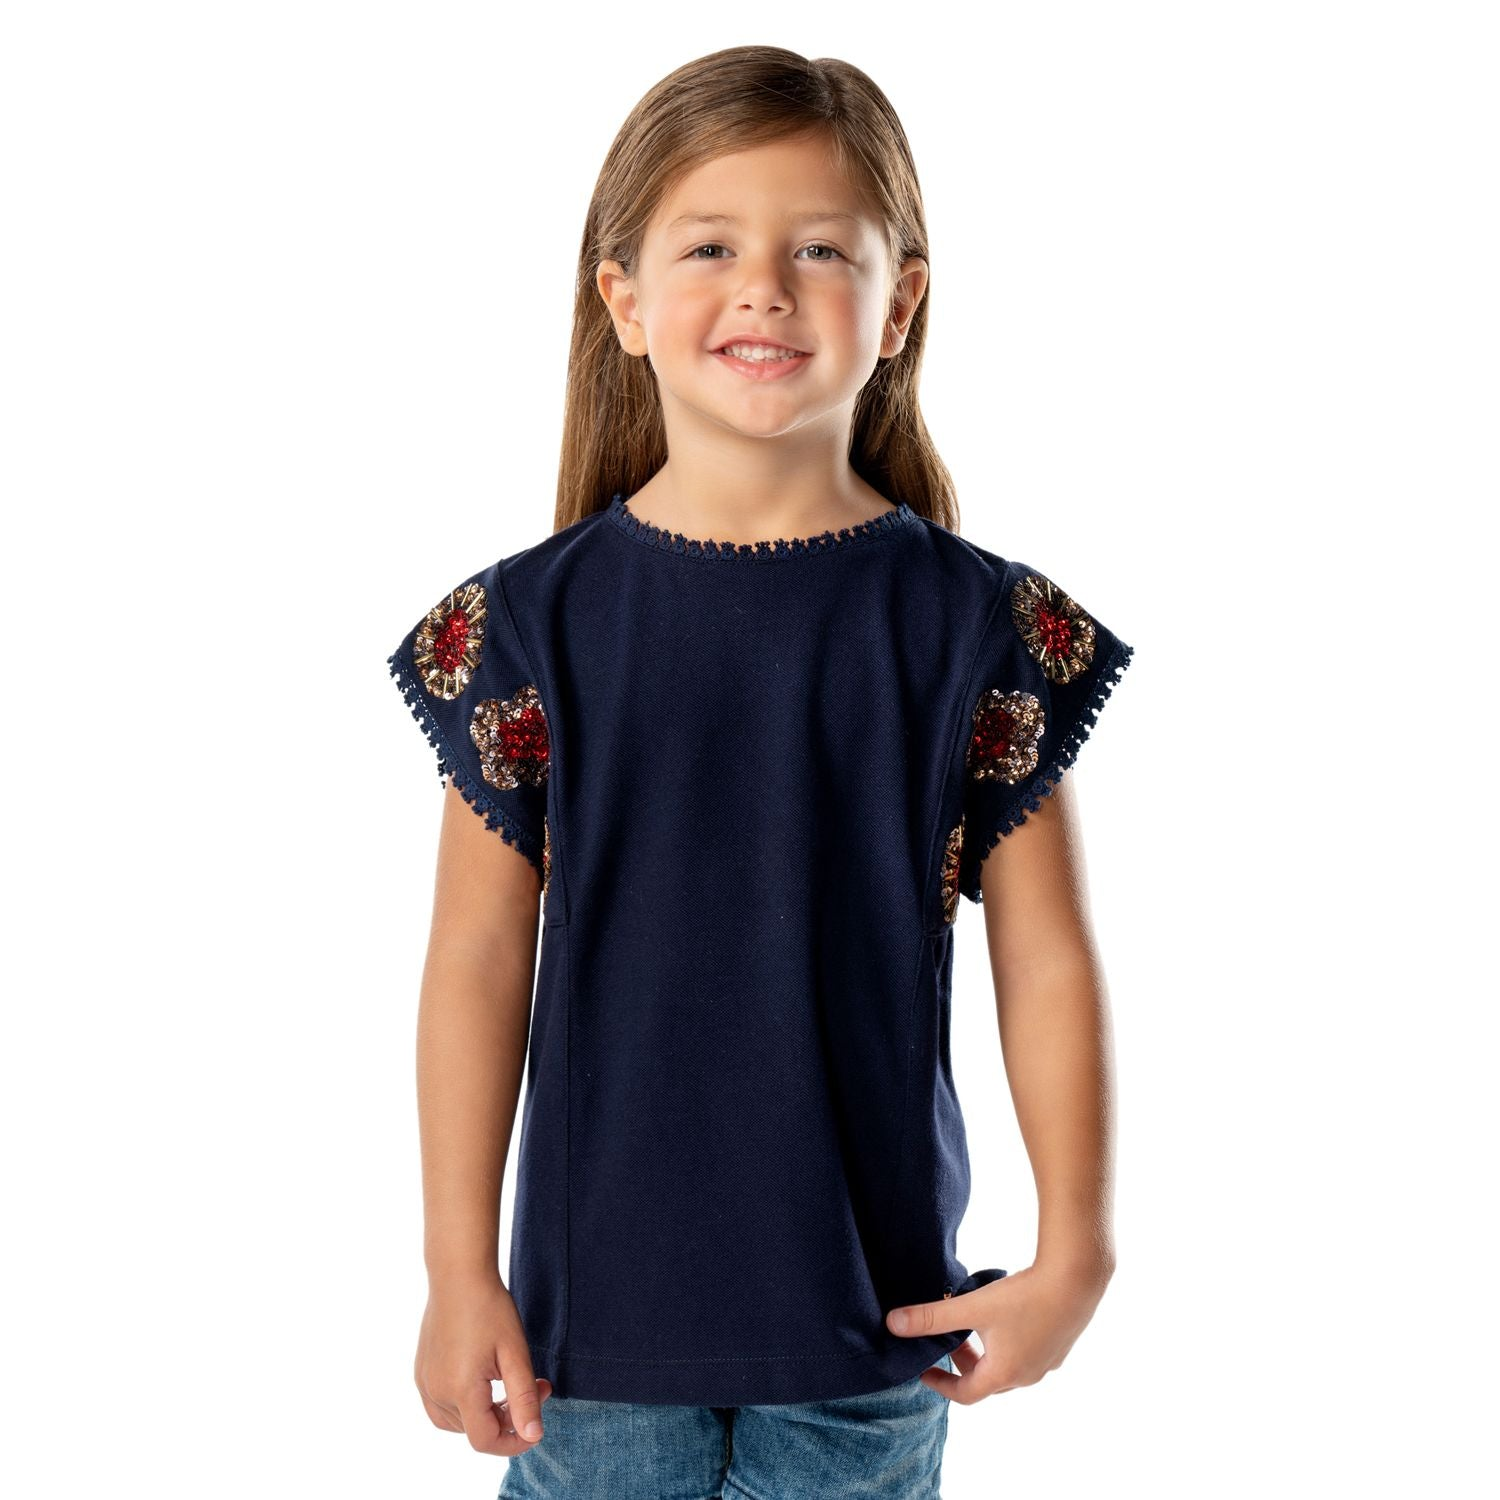 Emblem Top for Girls